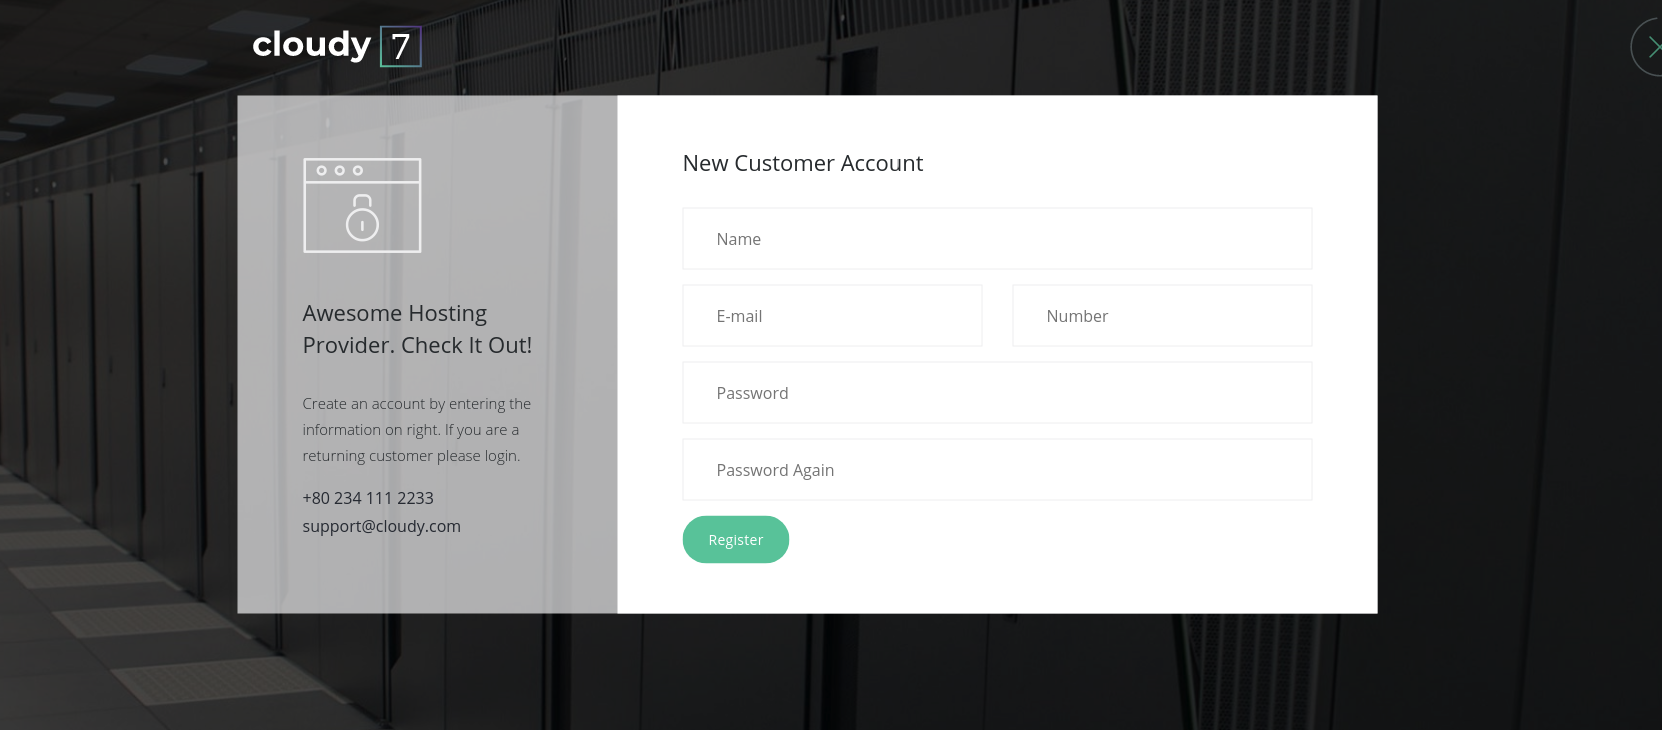 This is the login page of Cloudy 7 Bootstrap 4 admin template